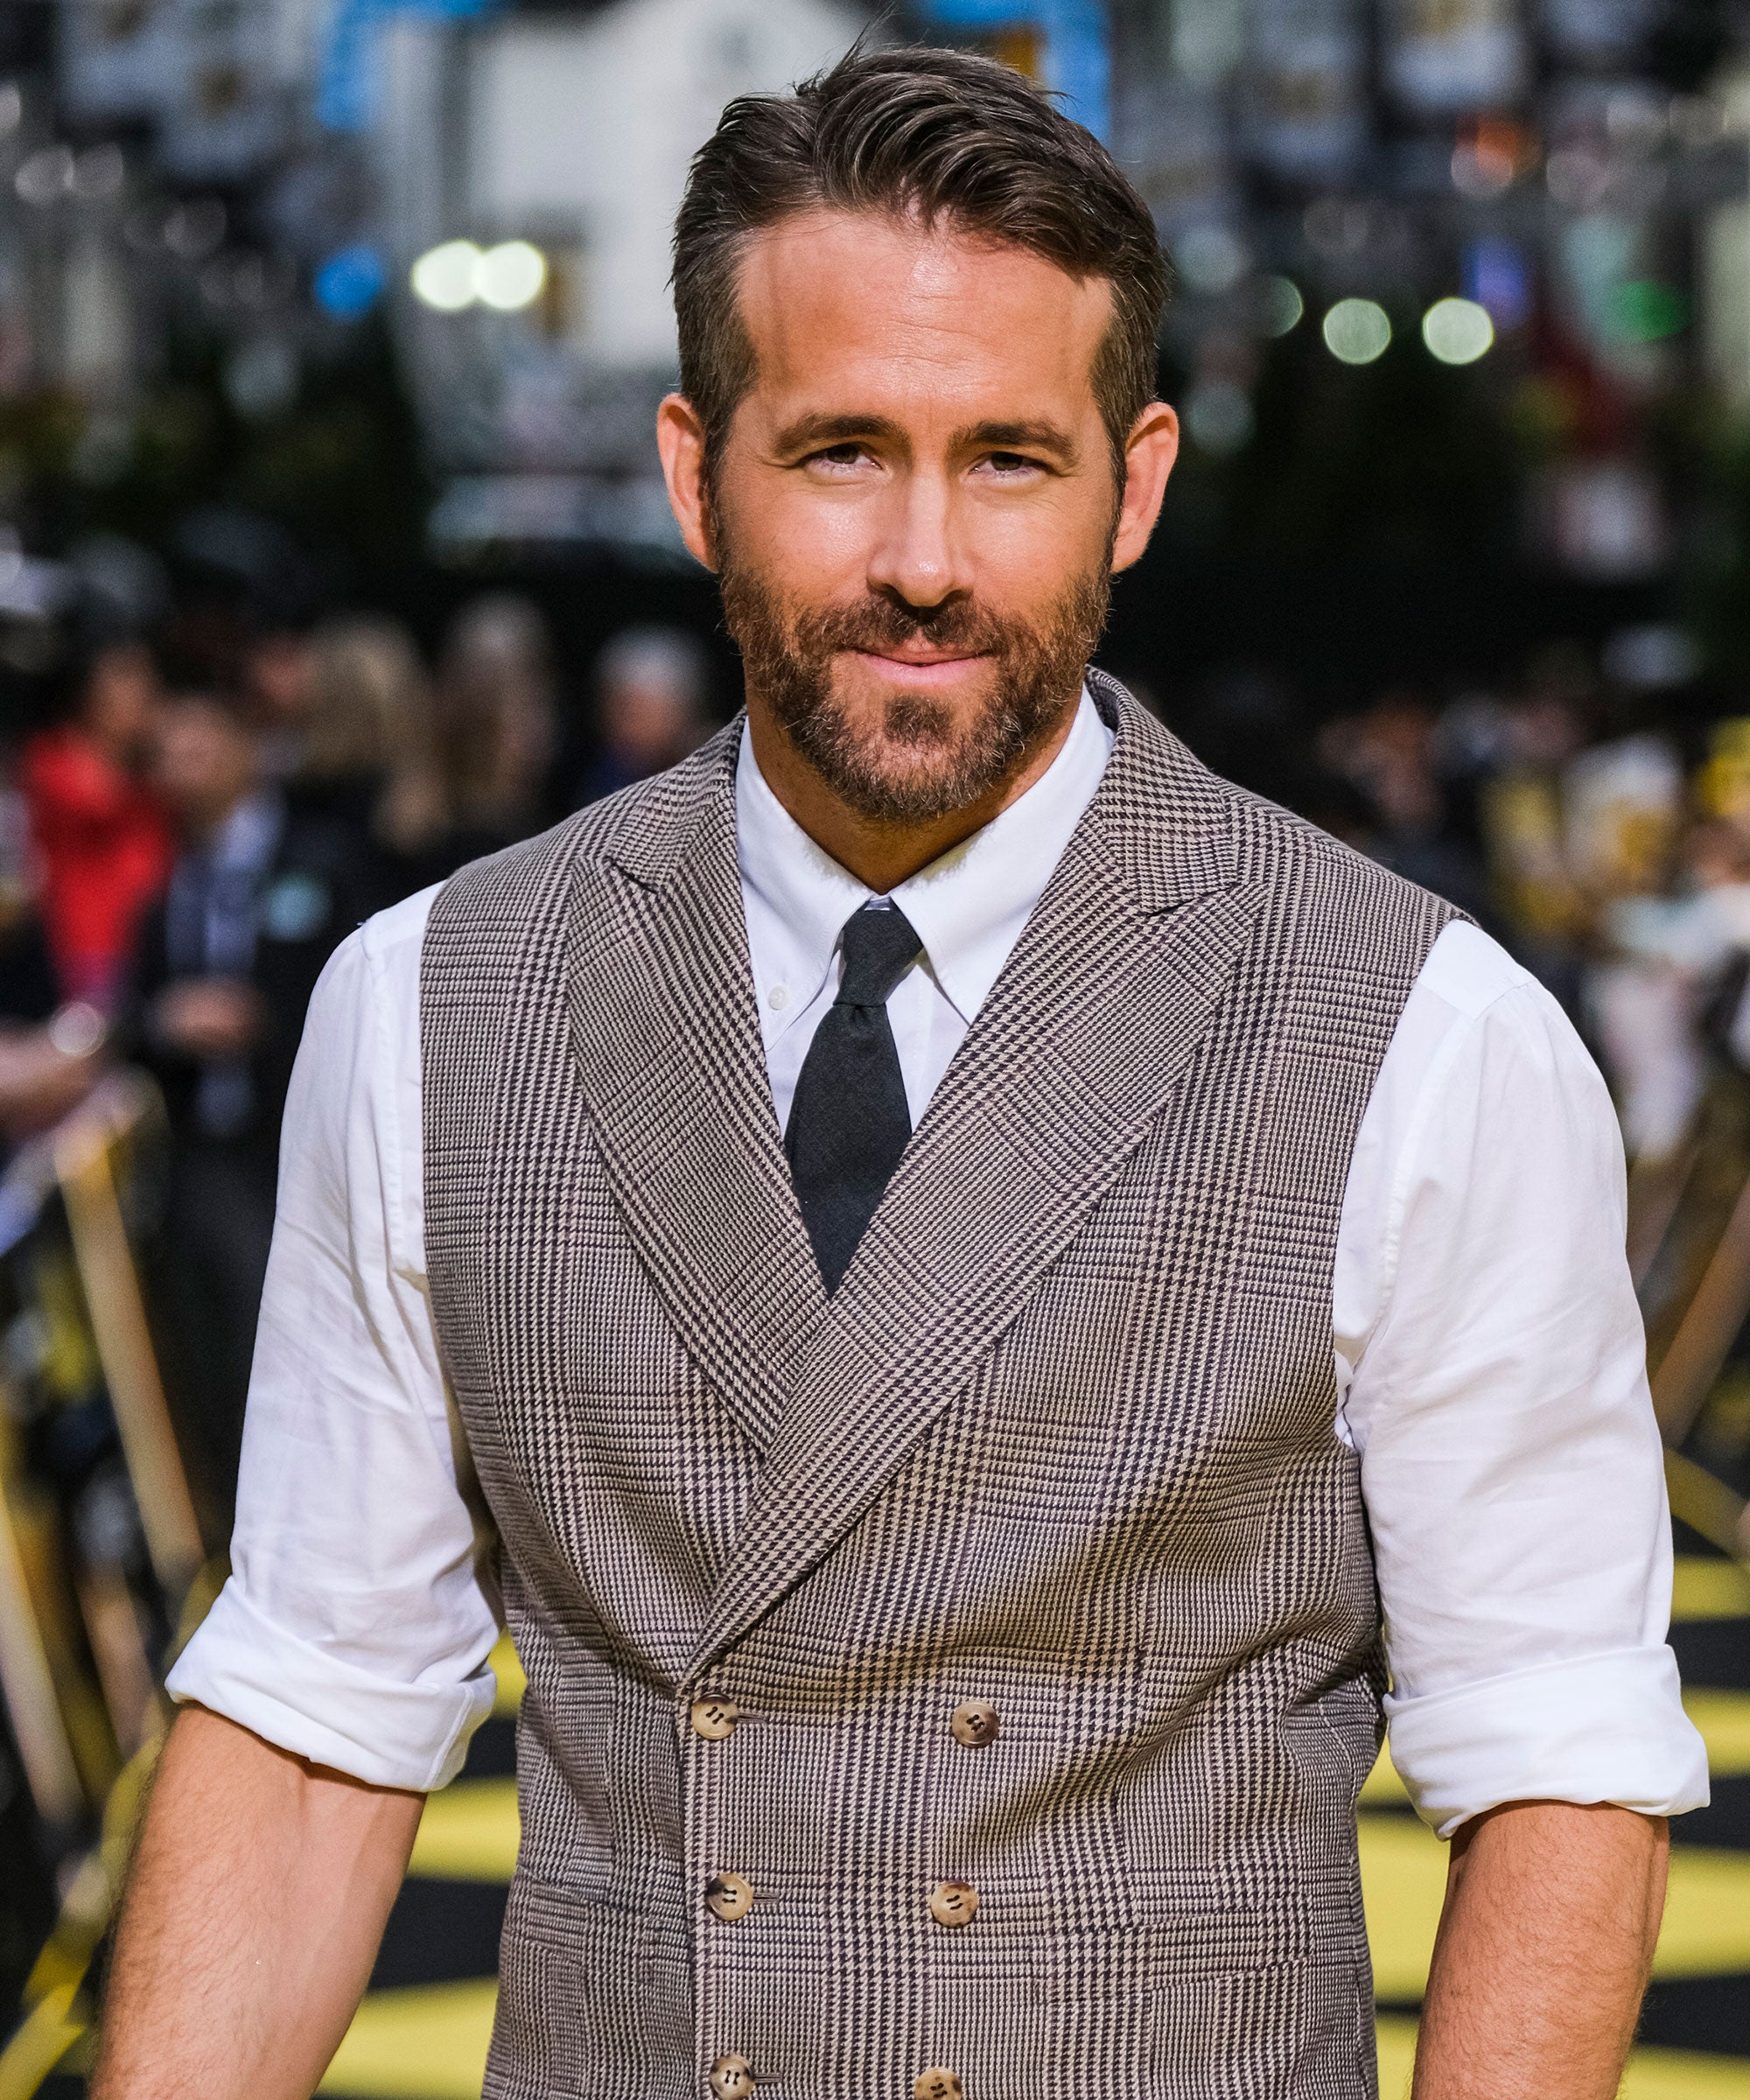 Ryan Reynolds Roasts That Peloton Ad With A Familiar Face